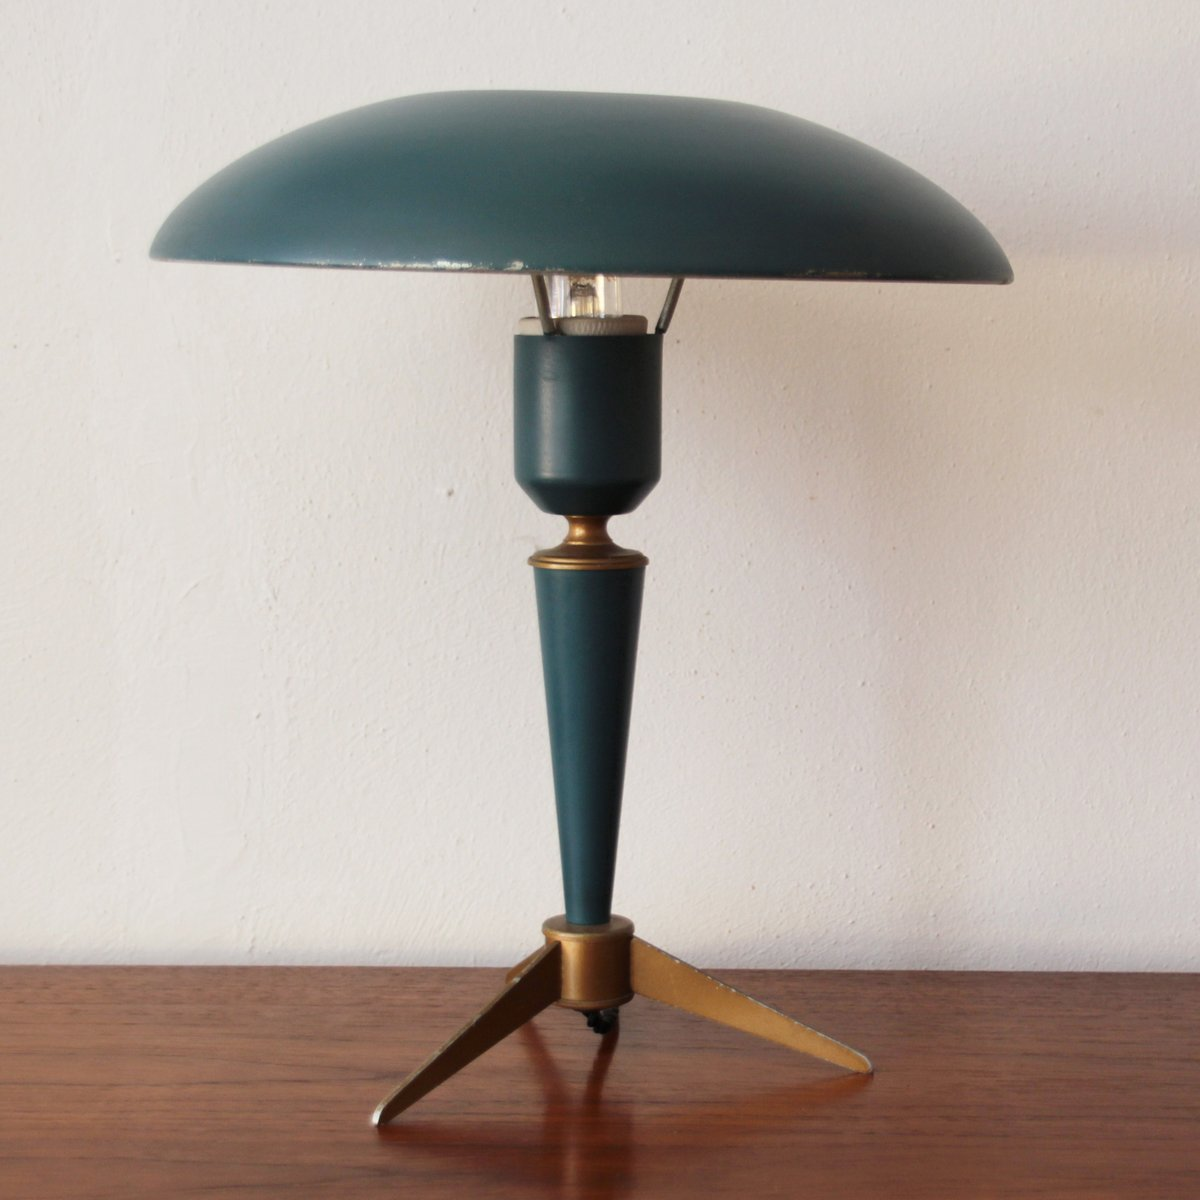 vintage tripod table lamp by louis kalff for philips for sale at pamono. Black Bedroom Furniture Sets. Home Design Ideas